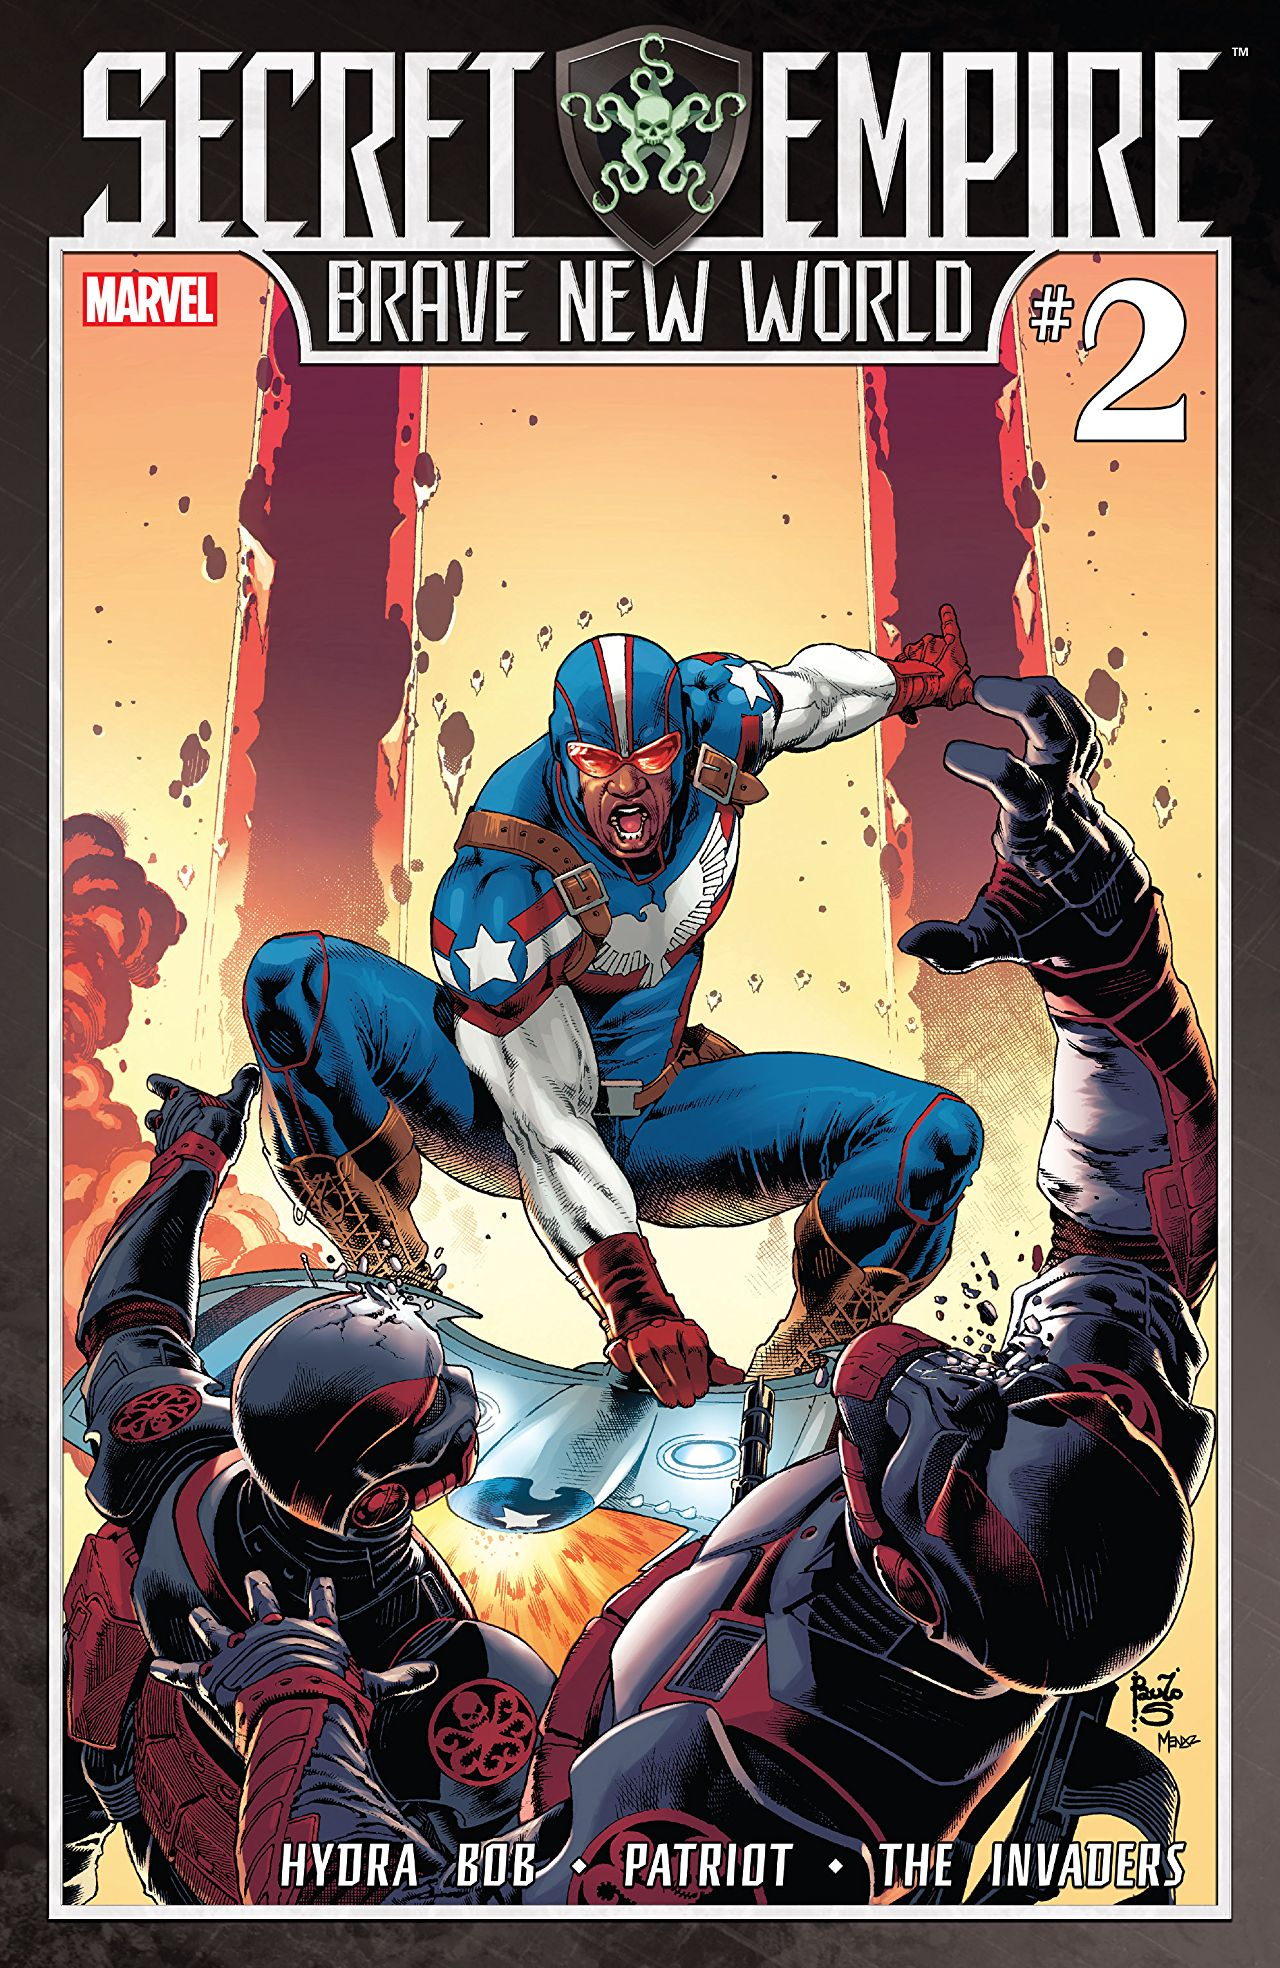 Secret Empire: Brave New World Vol 1 2